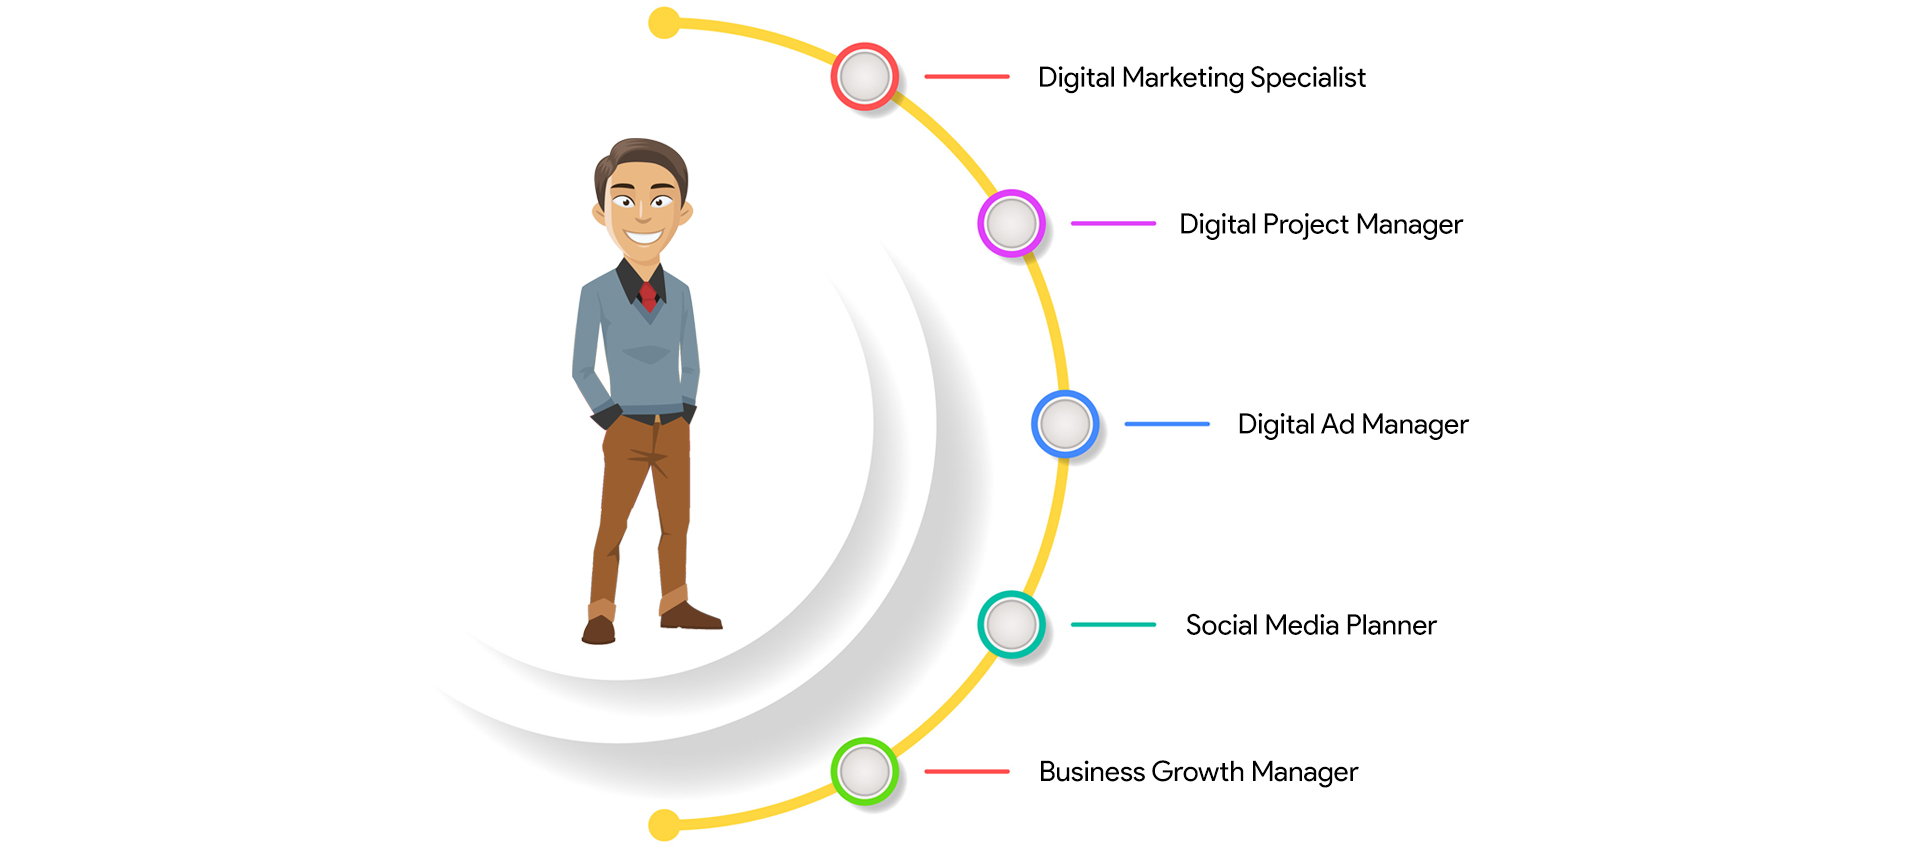 differnet-jobs-roles-after-digital-marketing-course